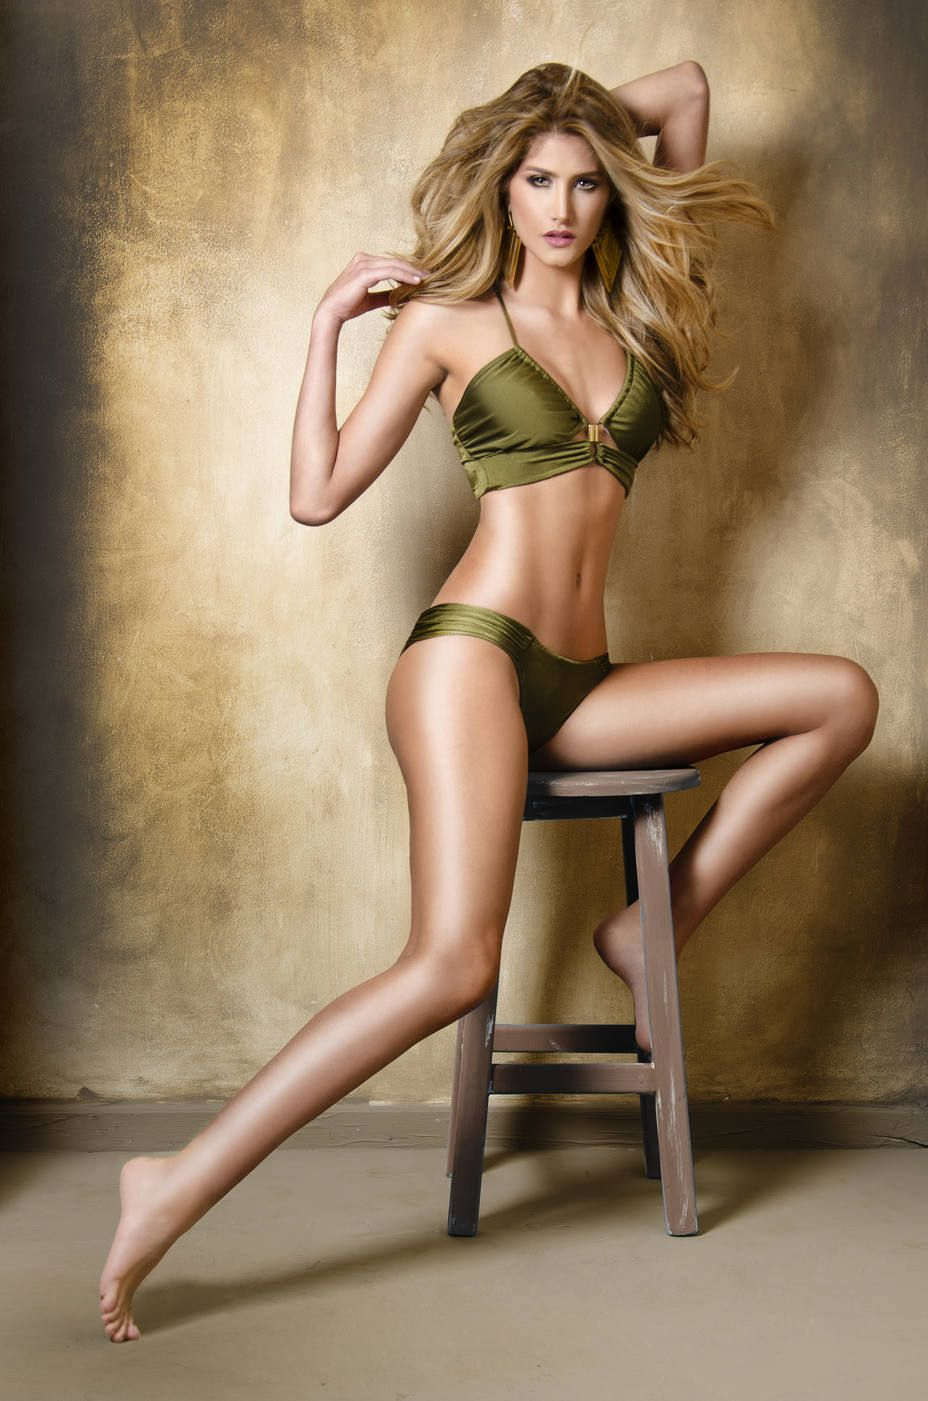 Mariam Habach pictorial on the chair